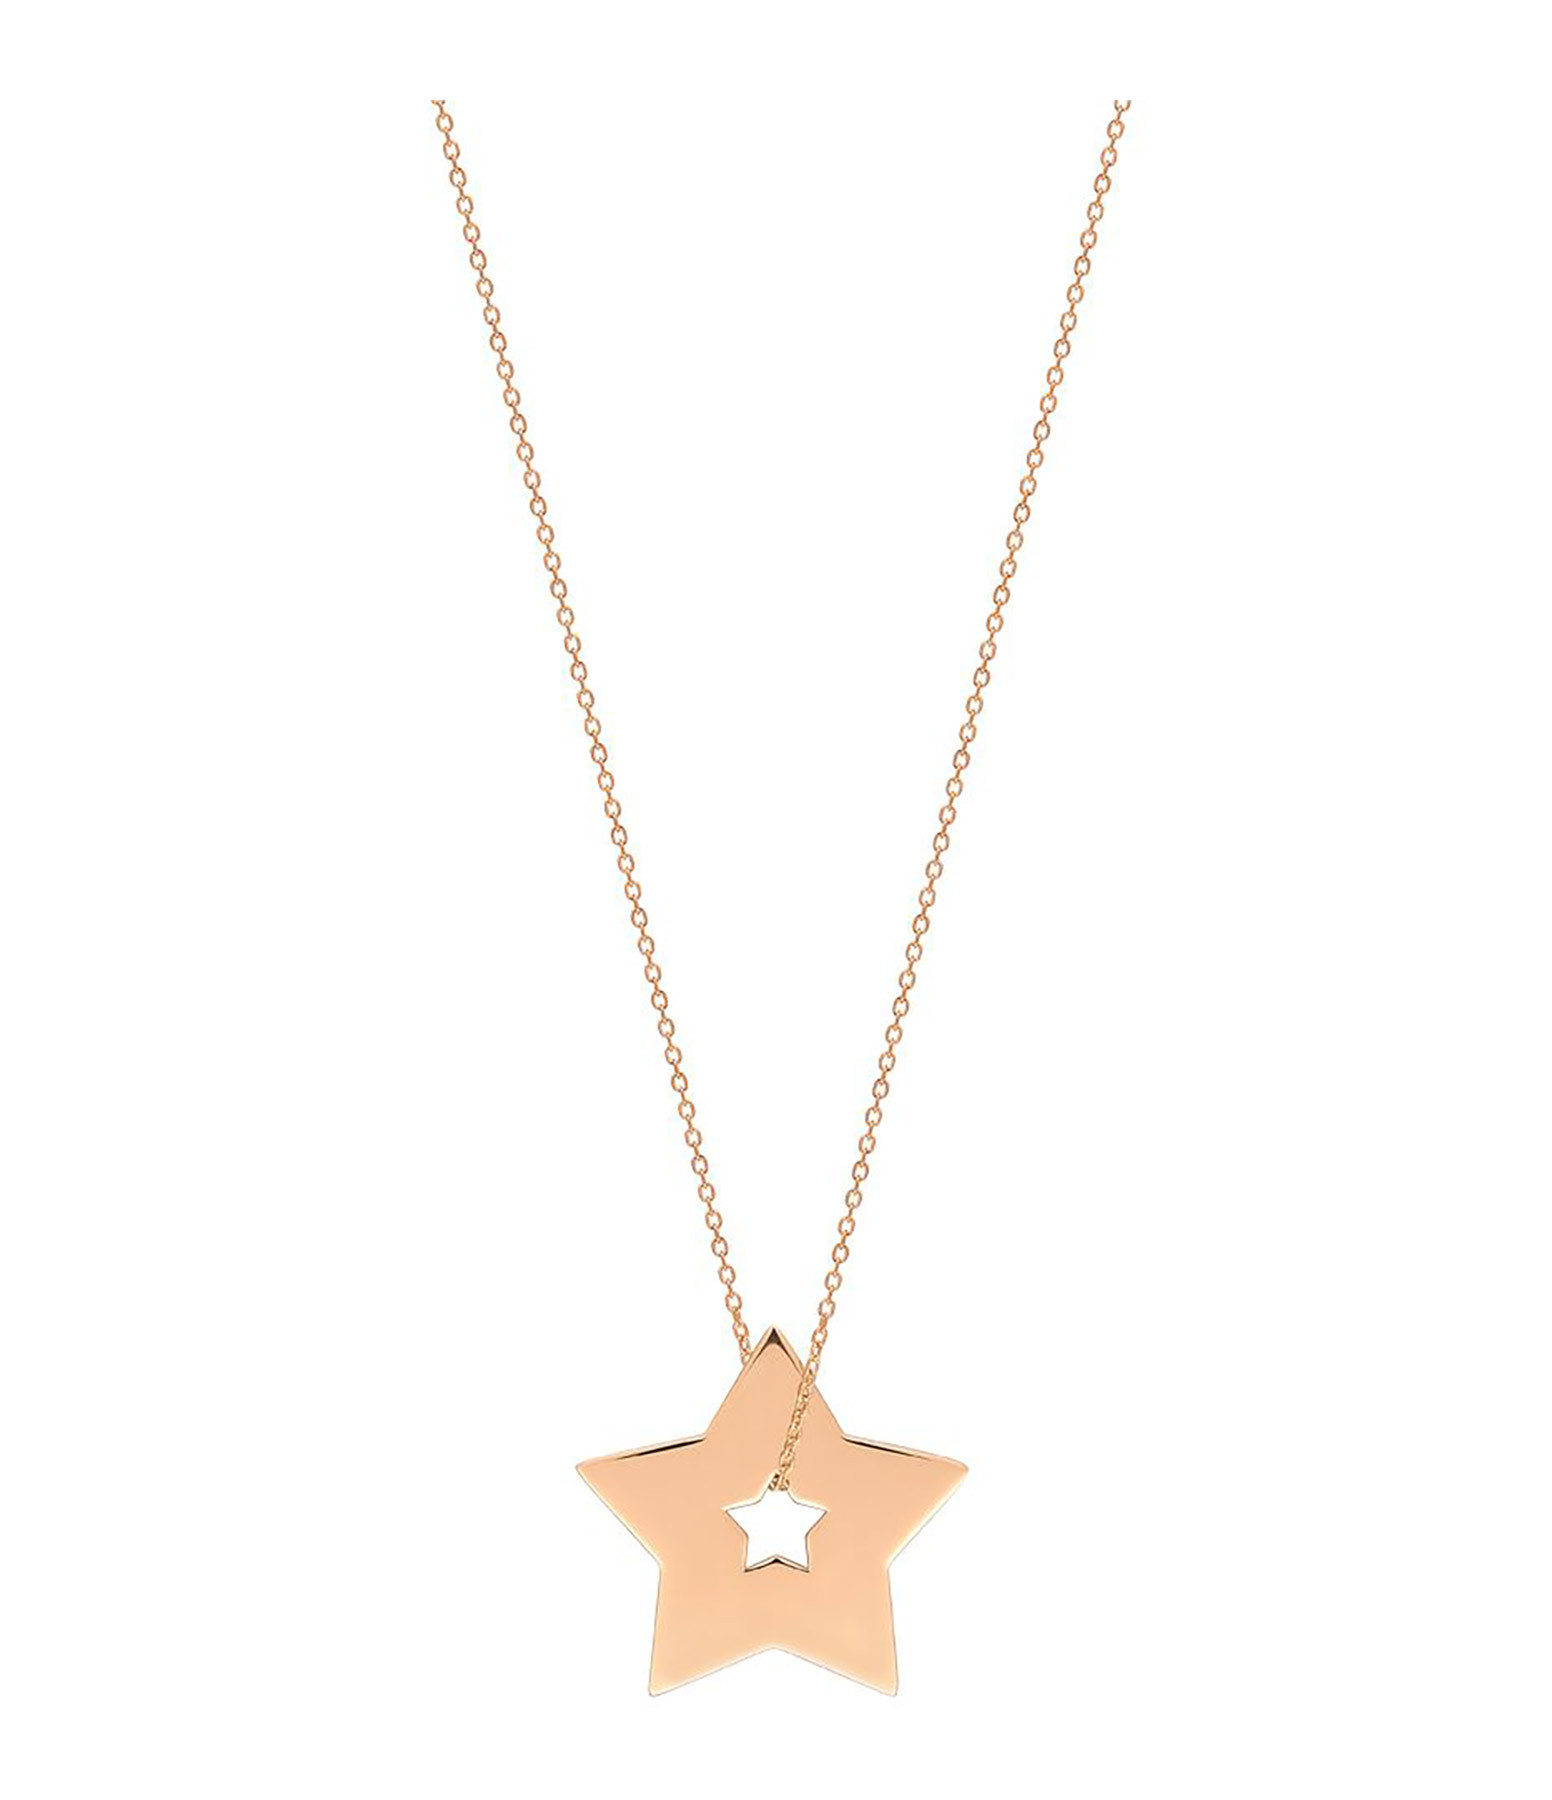 GINETTE_NY - Collier Milky Way Étoile Or Rose